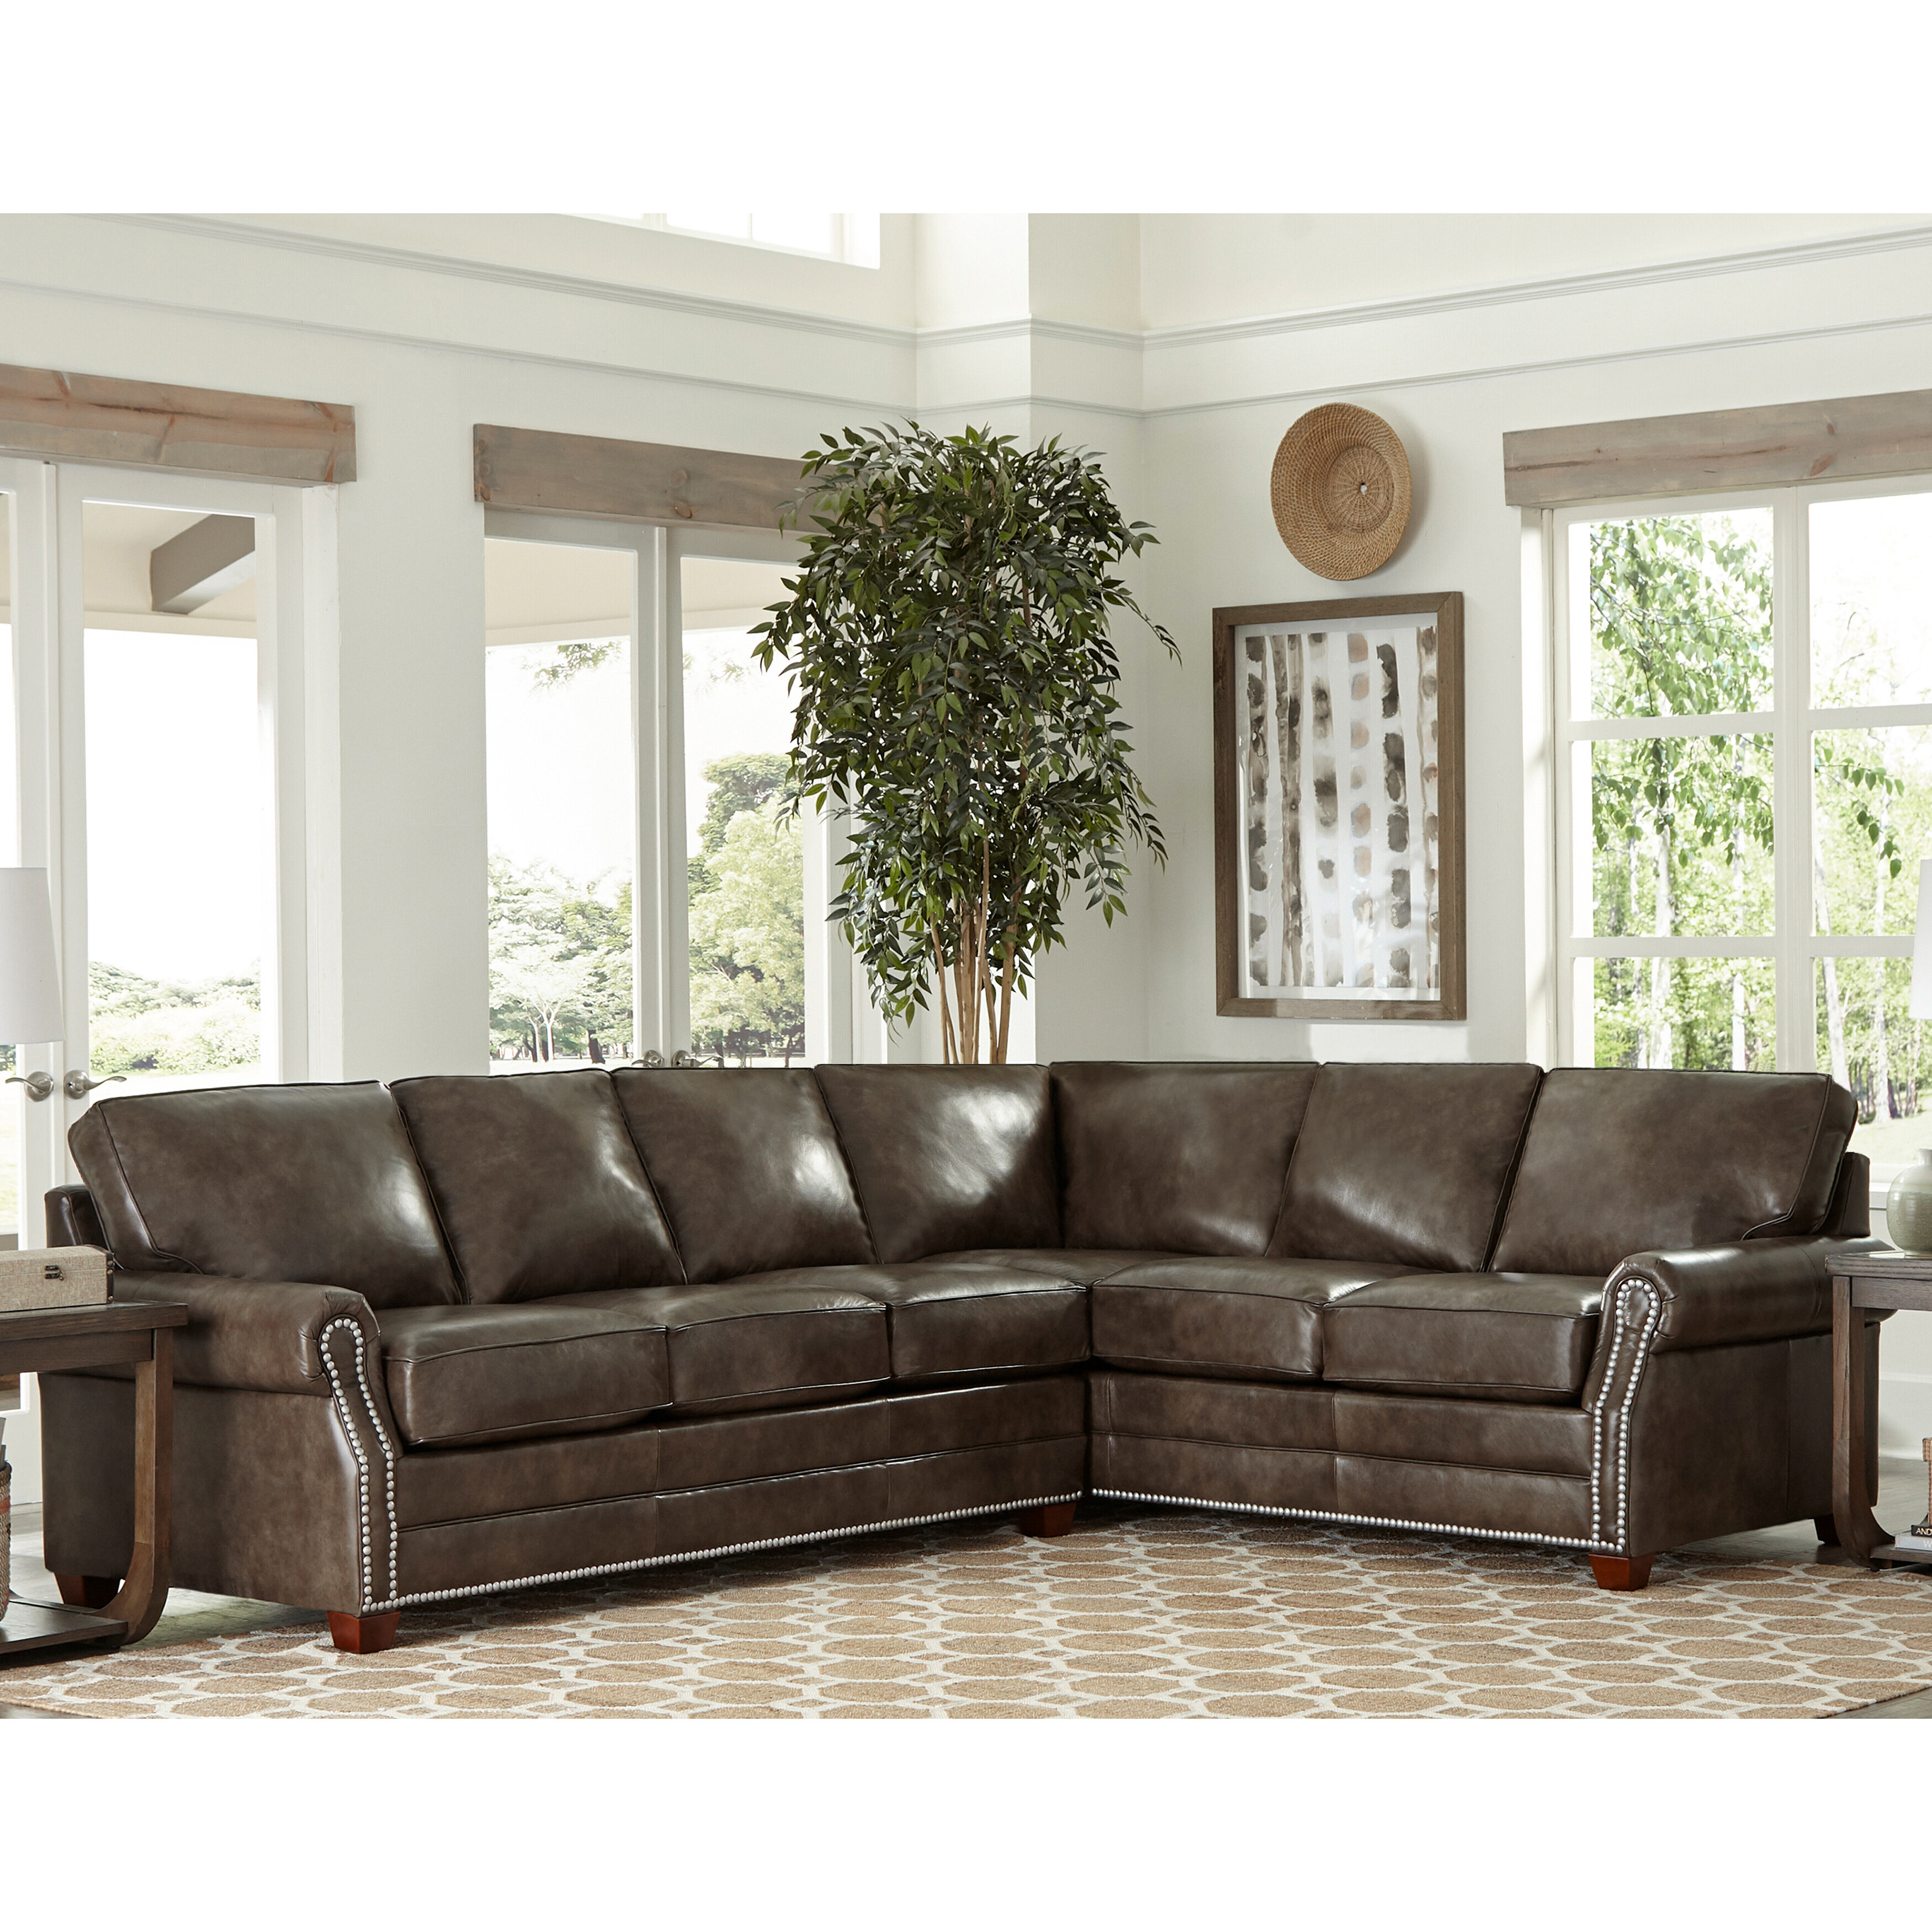 Susana Right Hand Facing Leather Sleeper Sectional